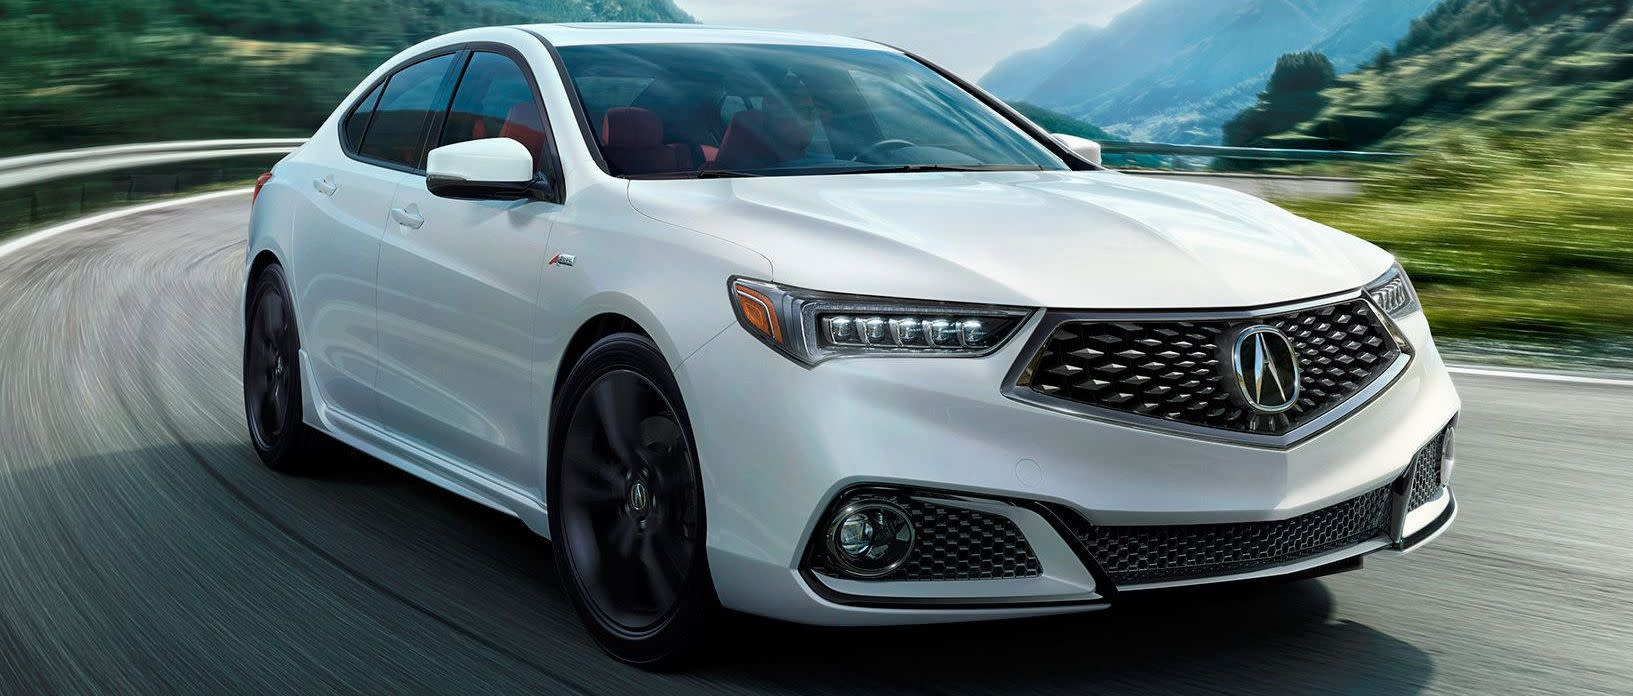 2018 Acura Tlx Review Specs Ball Acura New Used Acuras